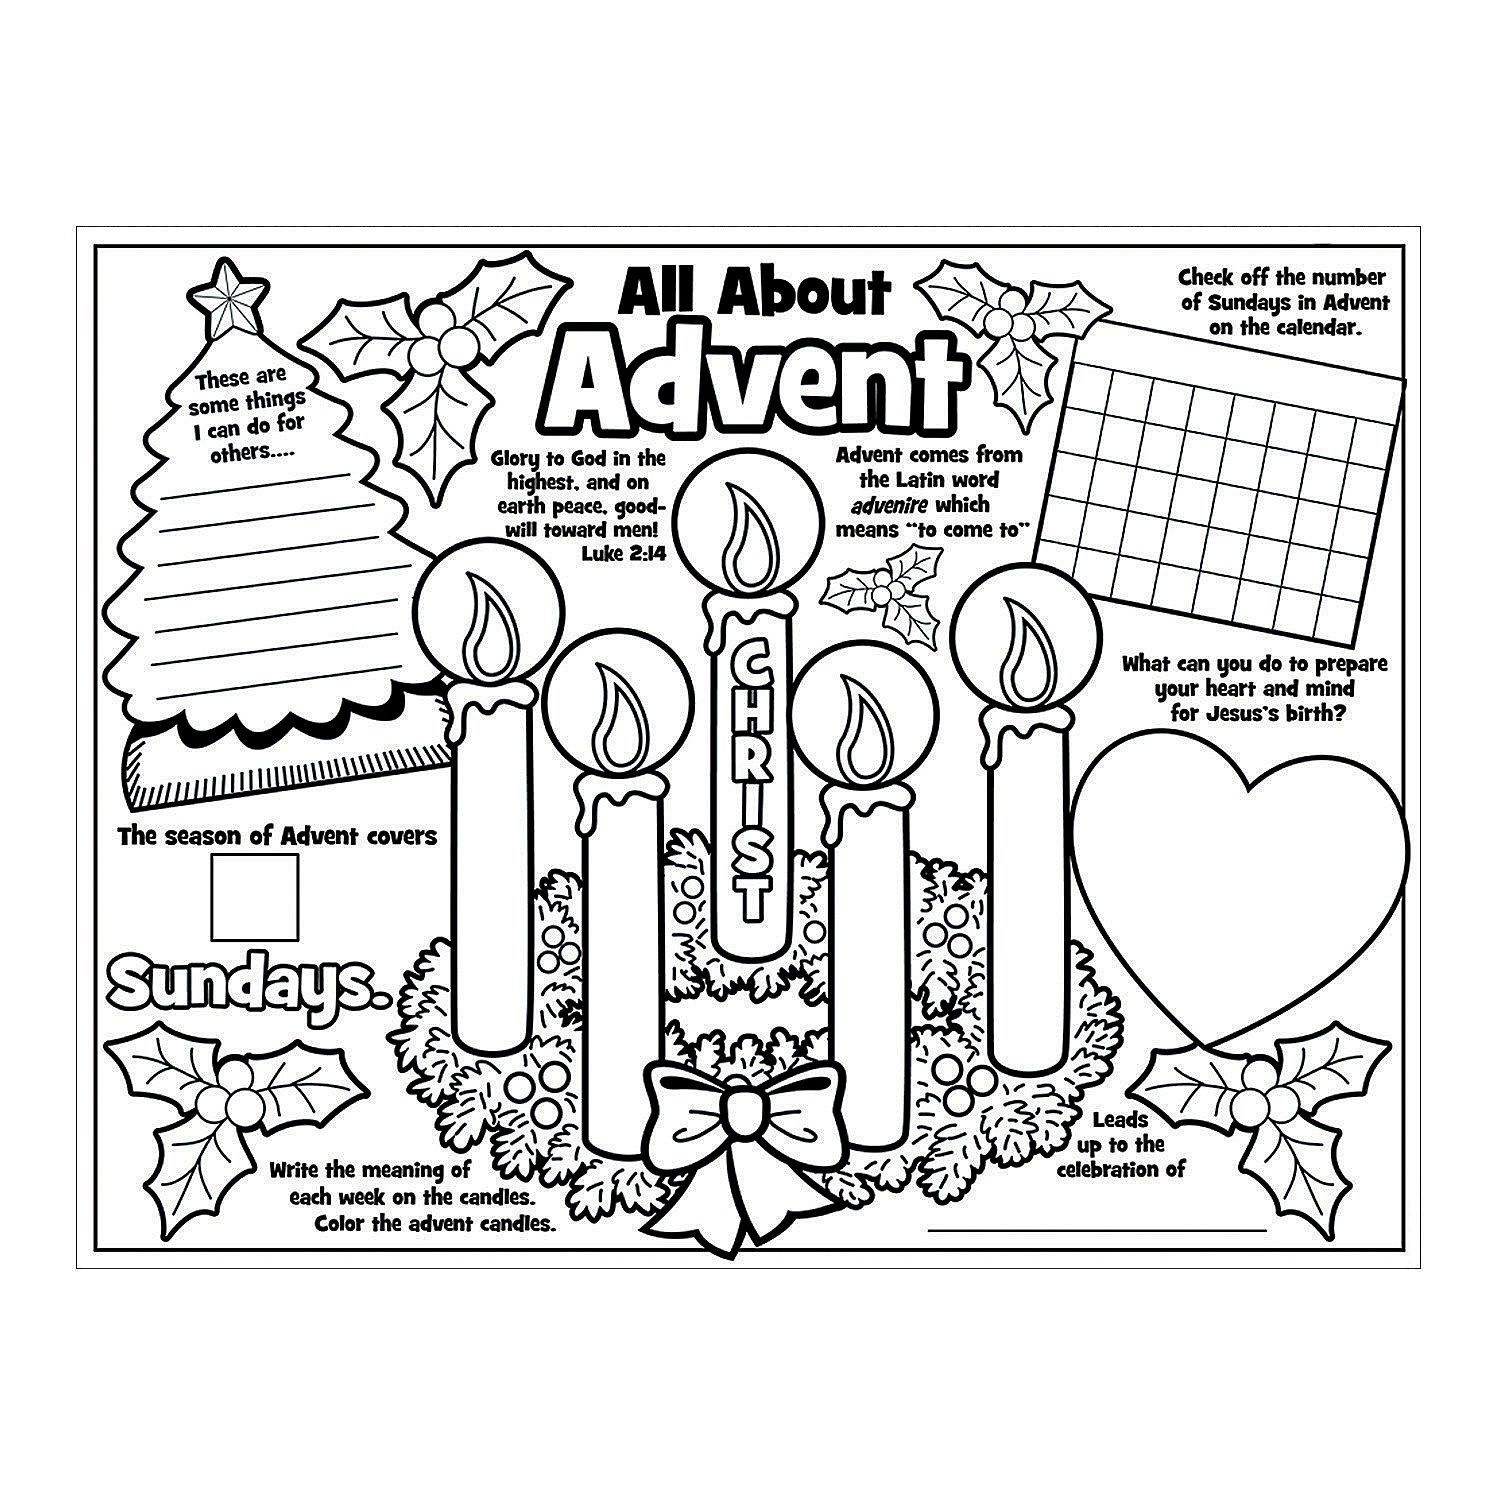 Paper Color Your Own All About Advent Posters